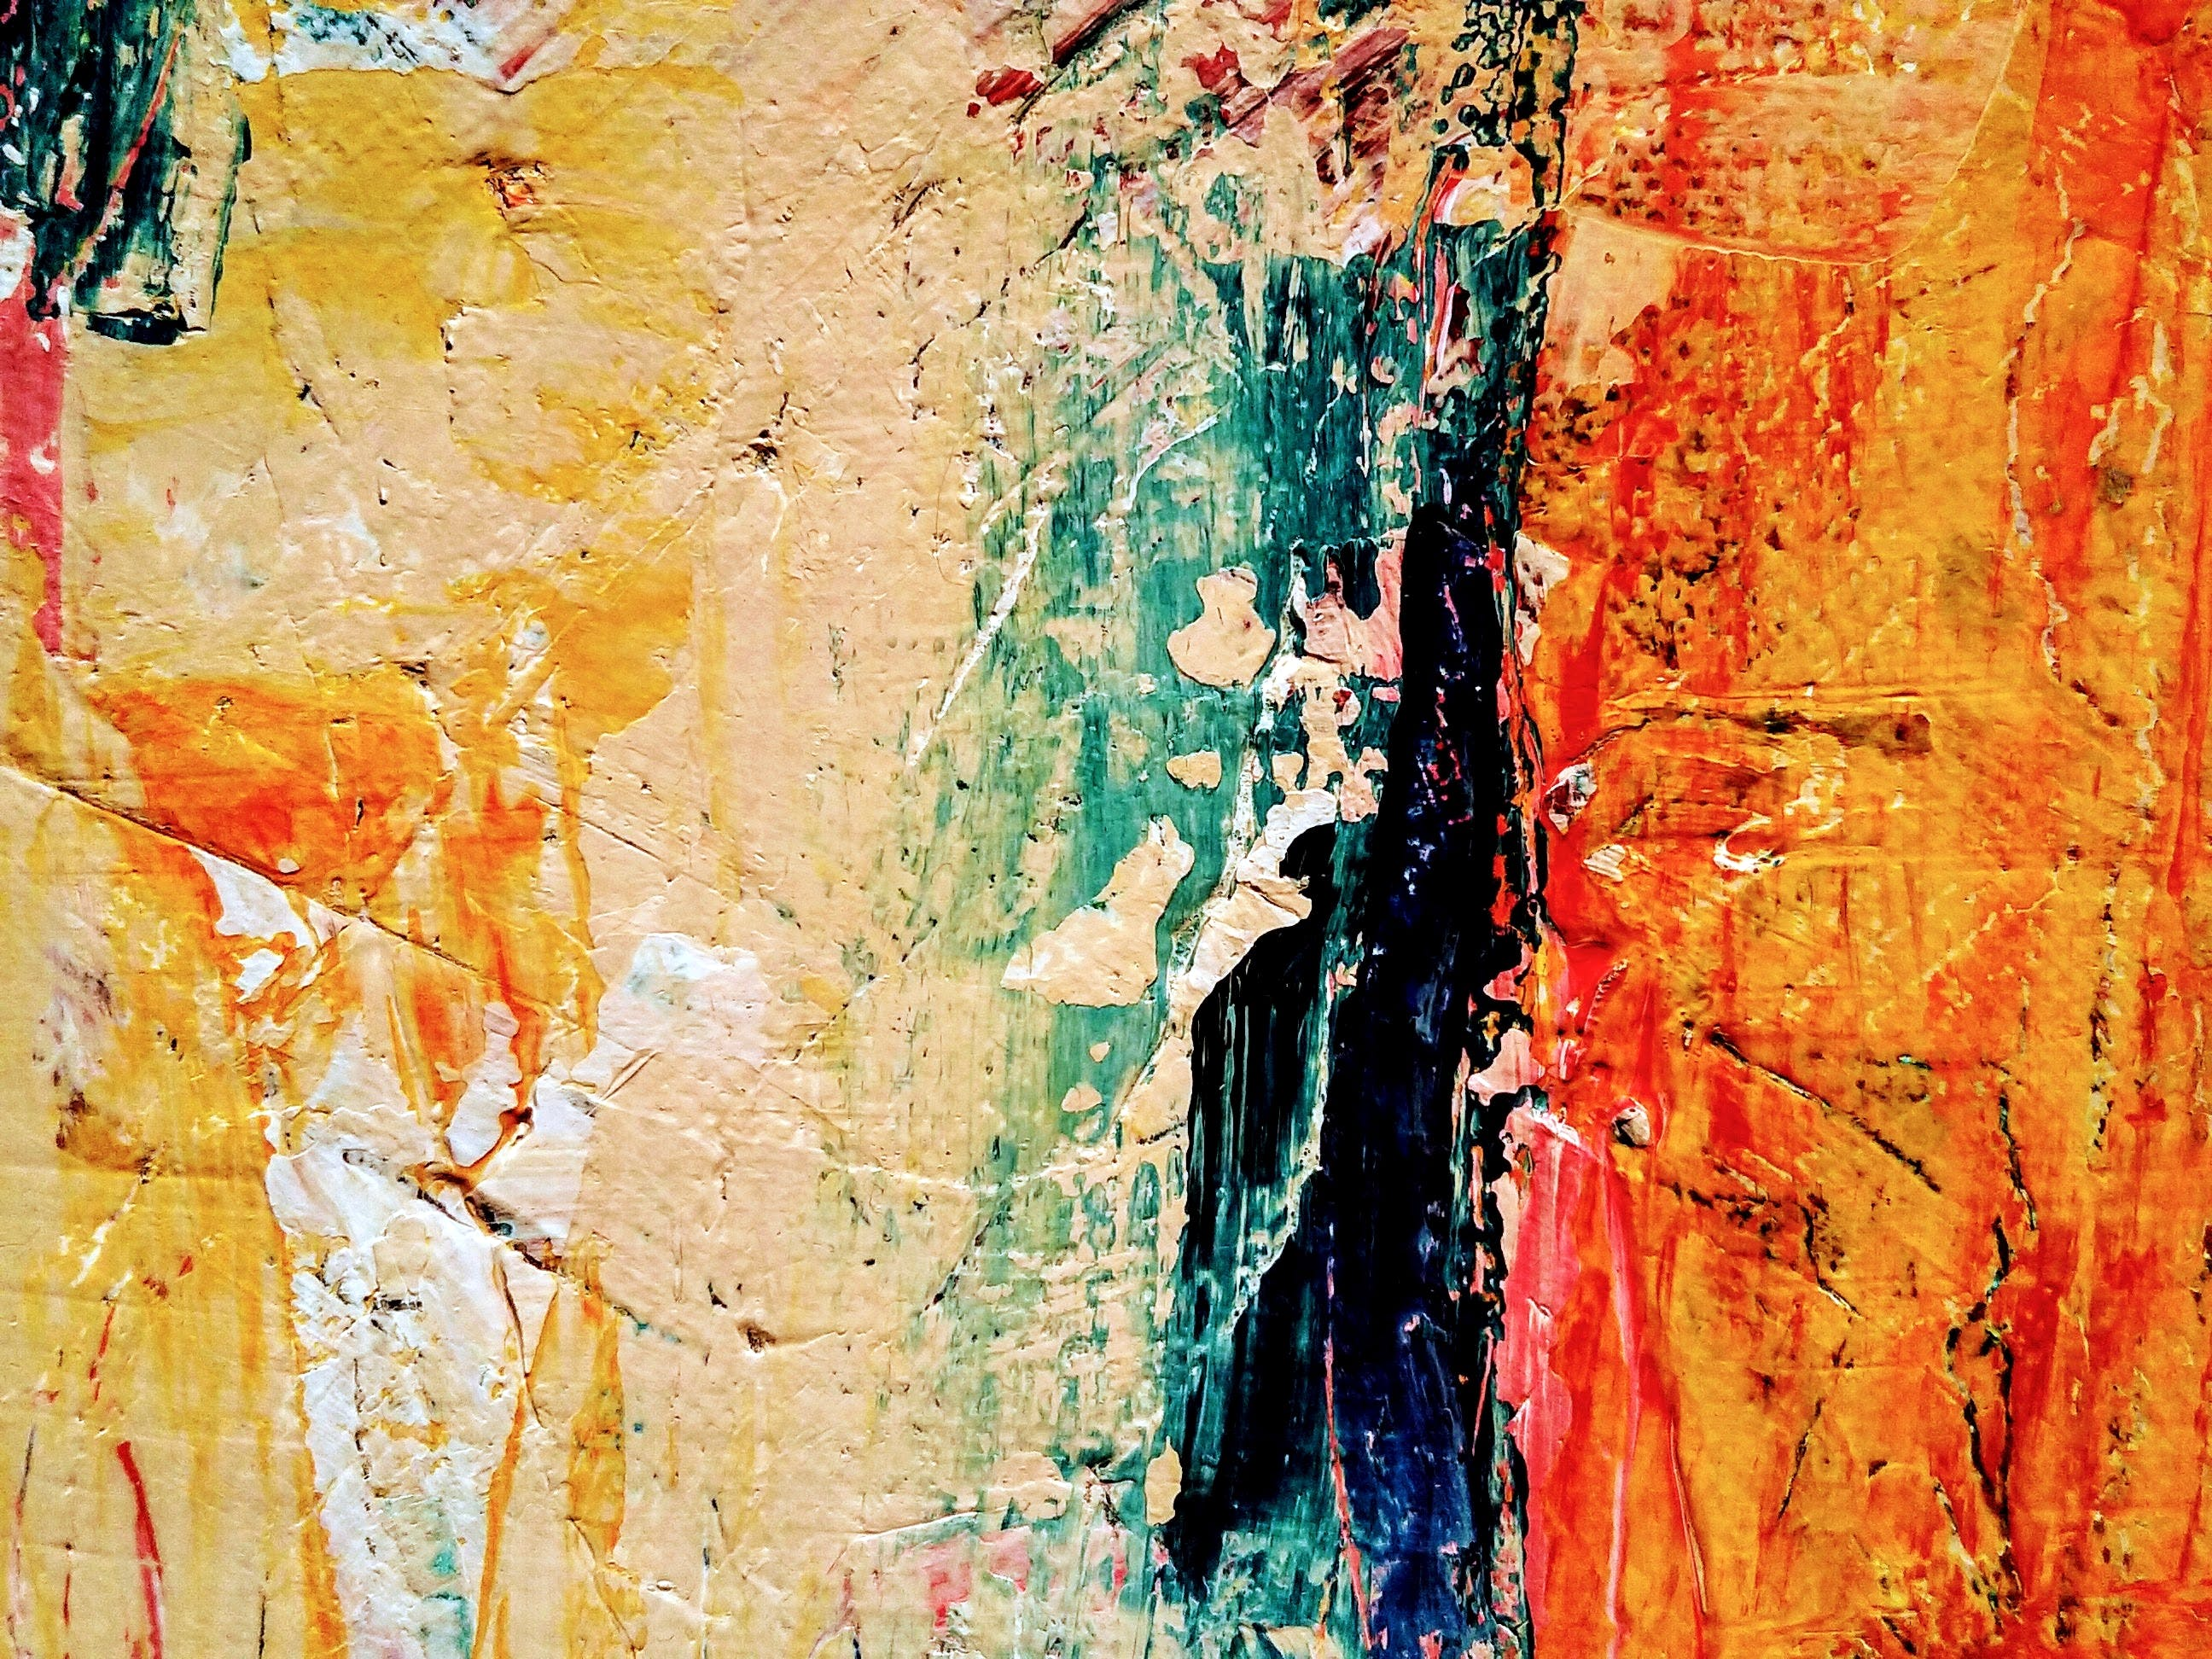 Orange And Blue Abstract Painting & 183 Free Stock Photo